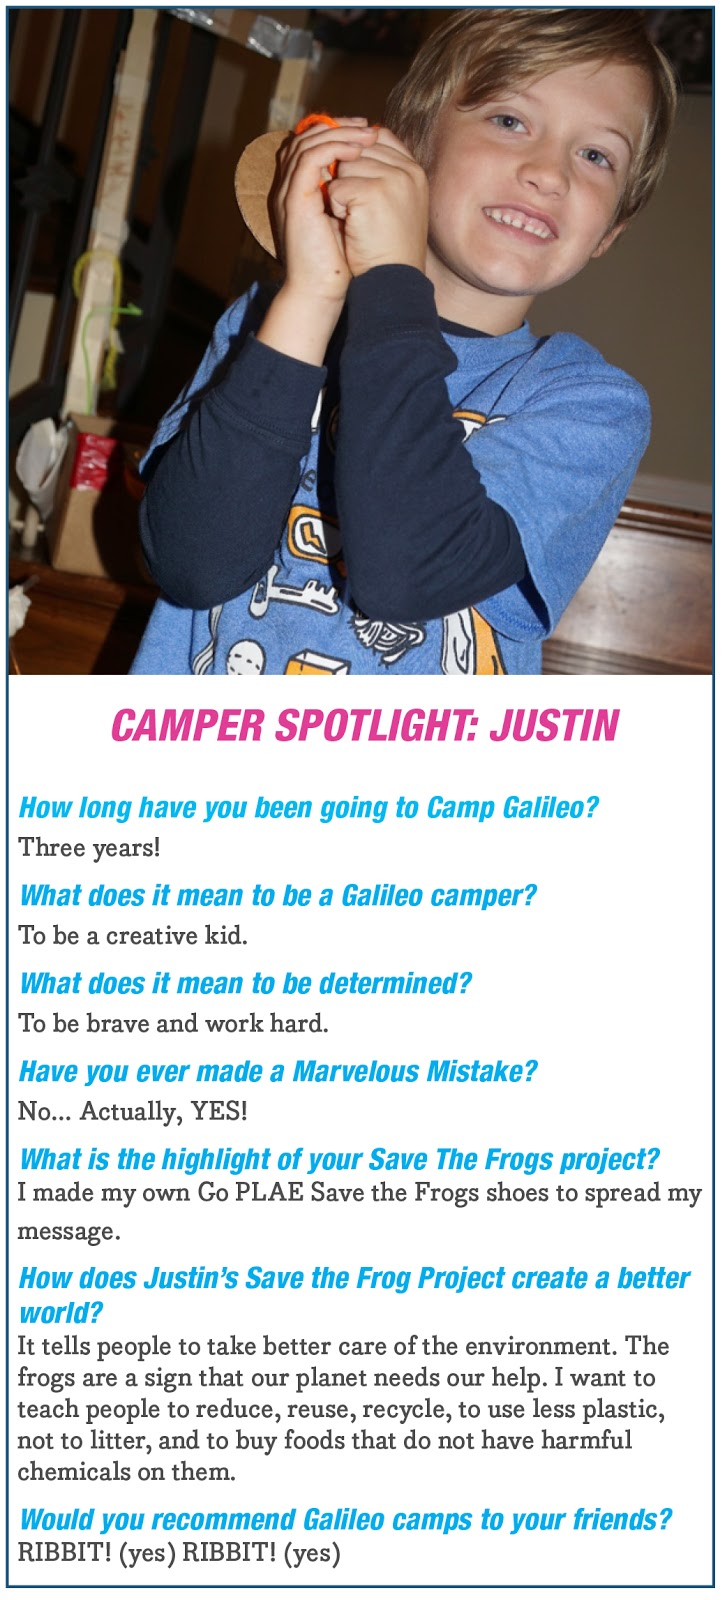 Camper Spotlight: Justin from Save the Frogs Project